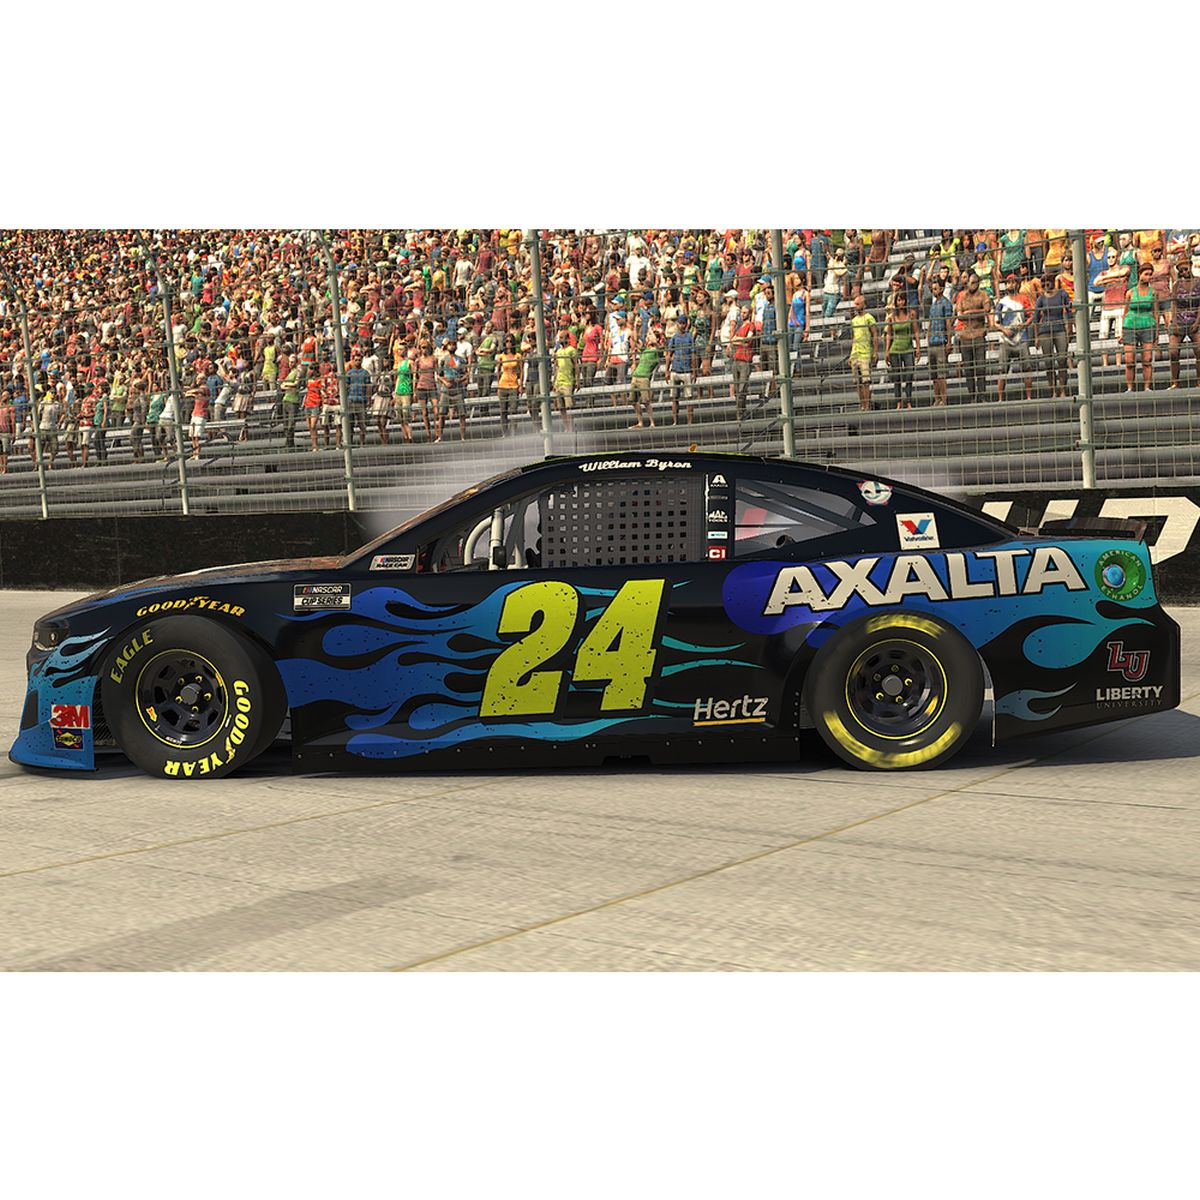 William Byron #24 2020 Axalta Bristol Motor Speedway iRacing WIN e-NASCAR Elite 1:24 - Die Cast